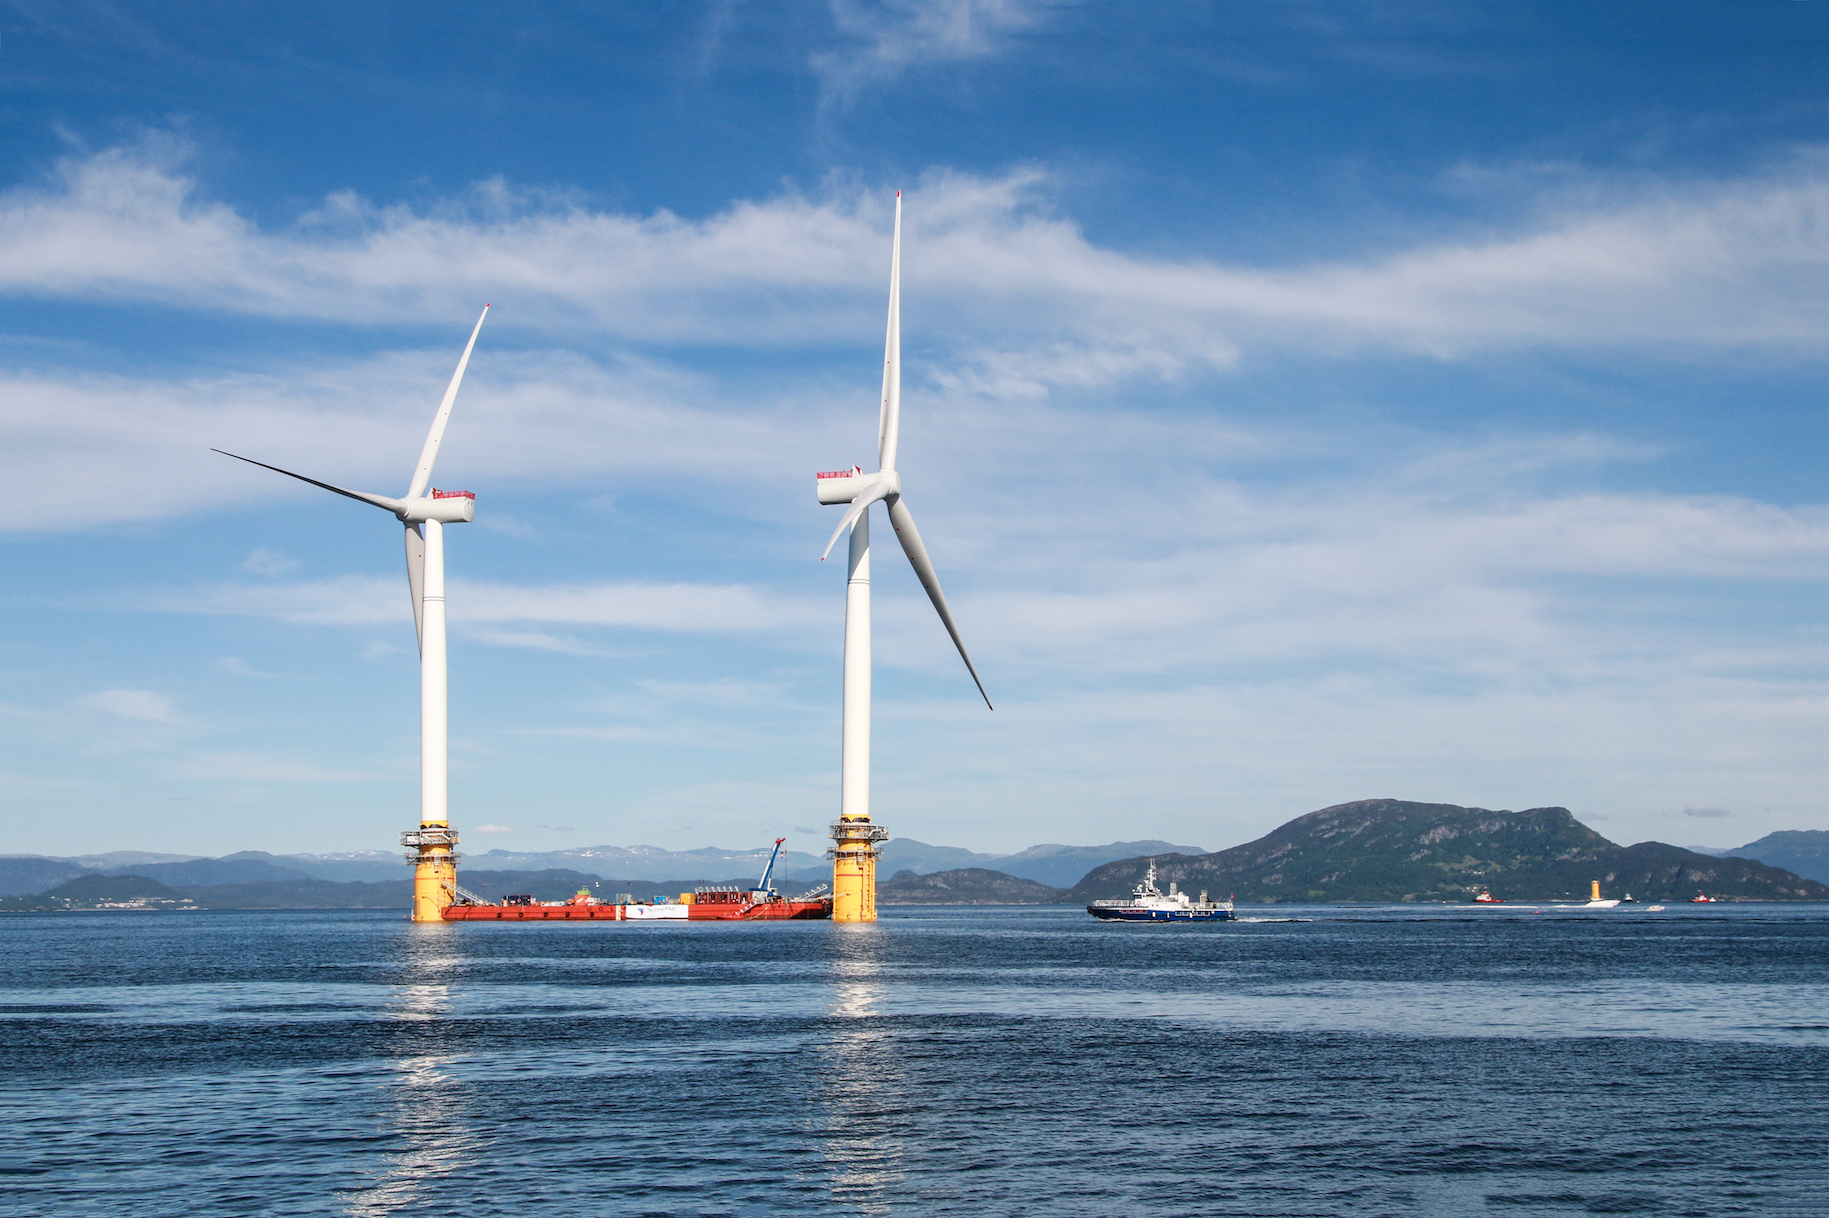 According to a recent study, open ocean wind farms may be able to generate three times more power than wind turbines on land.